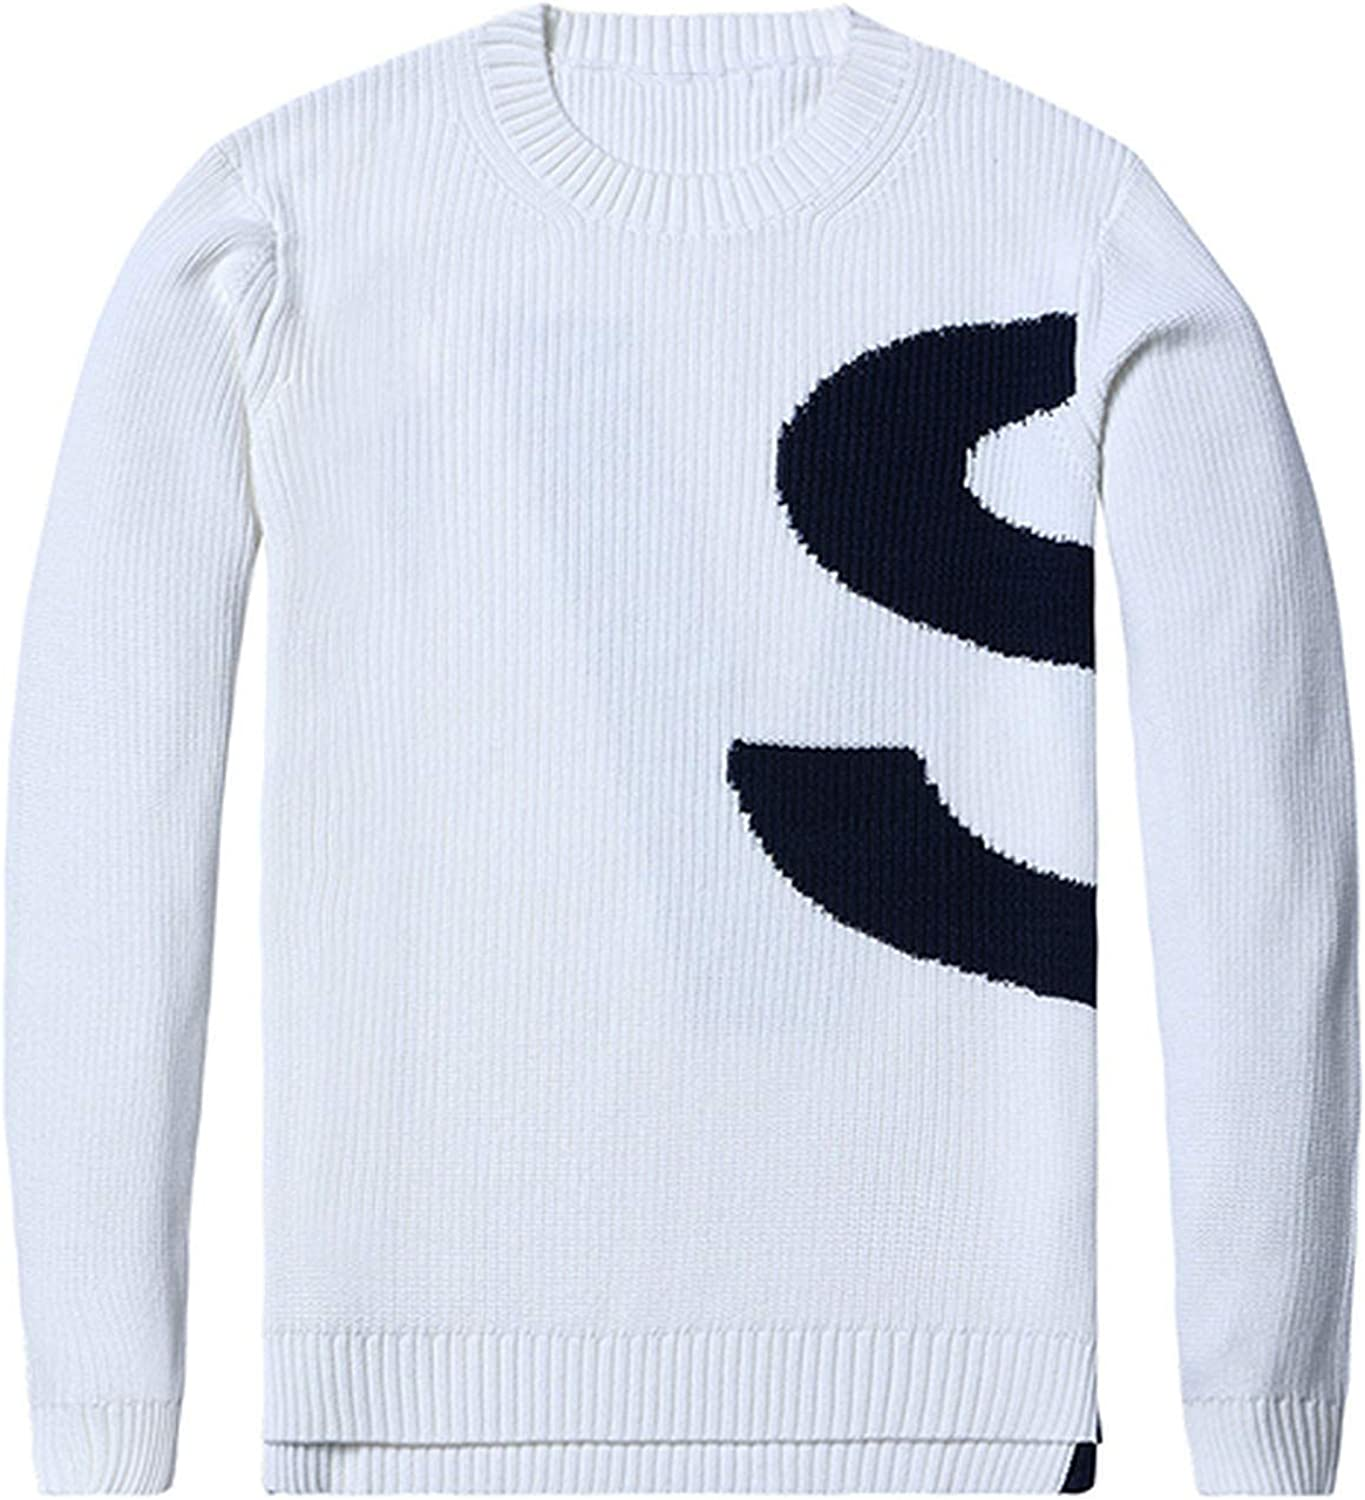 SHILINWEI 2019 Winter Sweater Men Knitted Pullovers Men Fashion Contrast Color Letter Printed